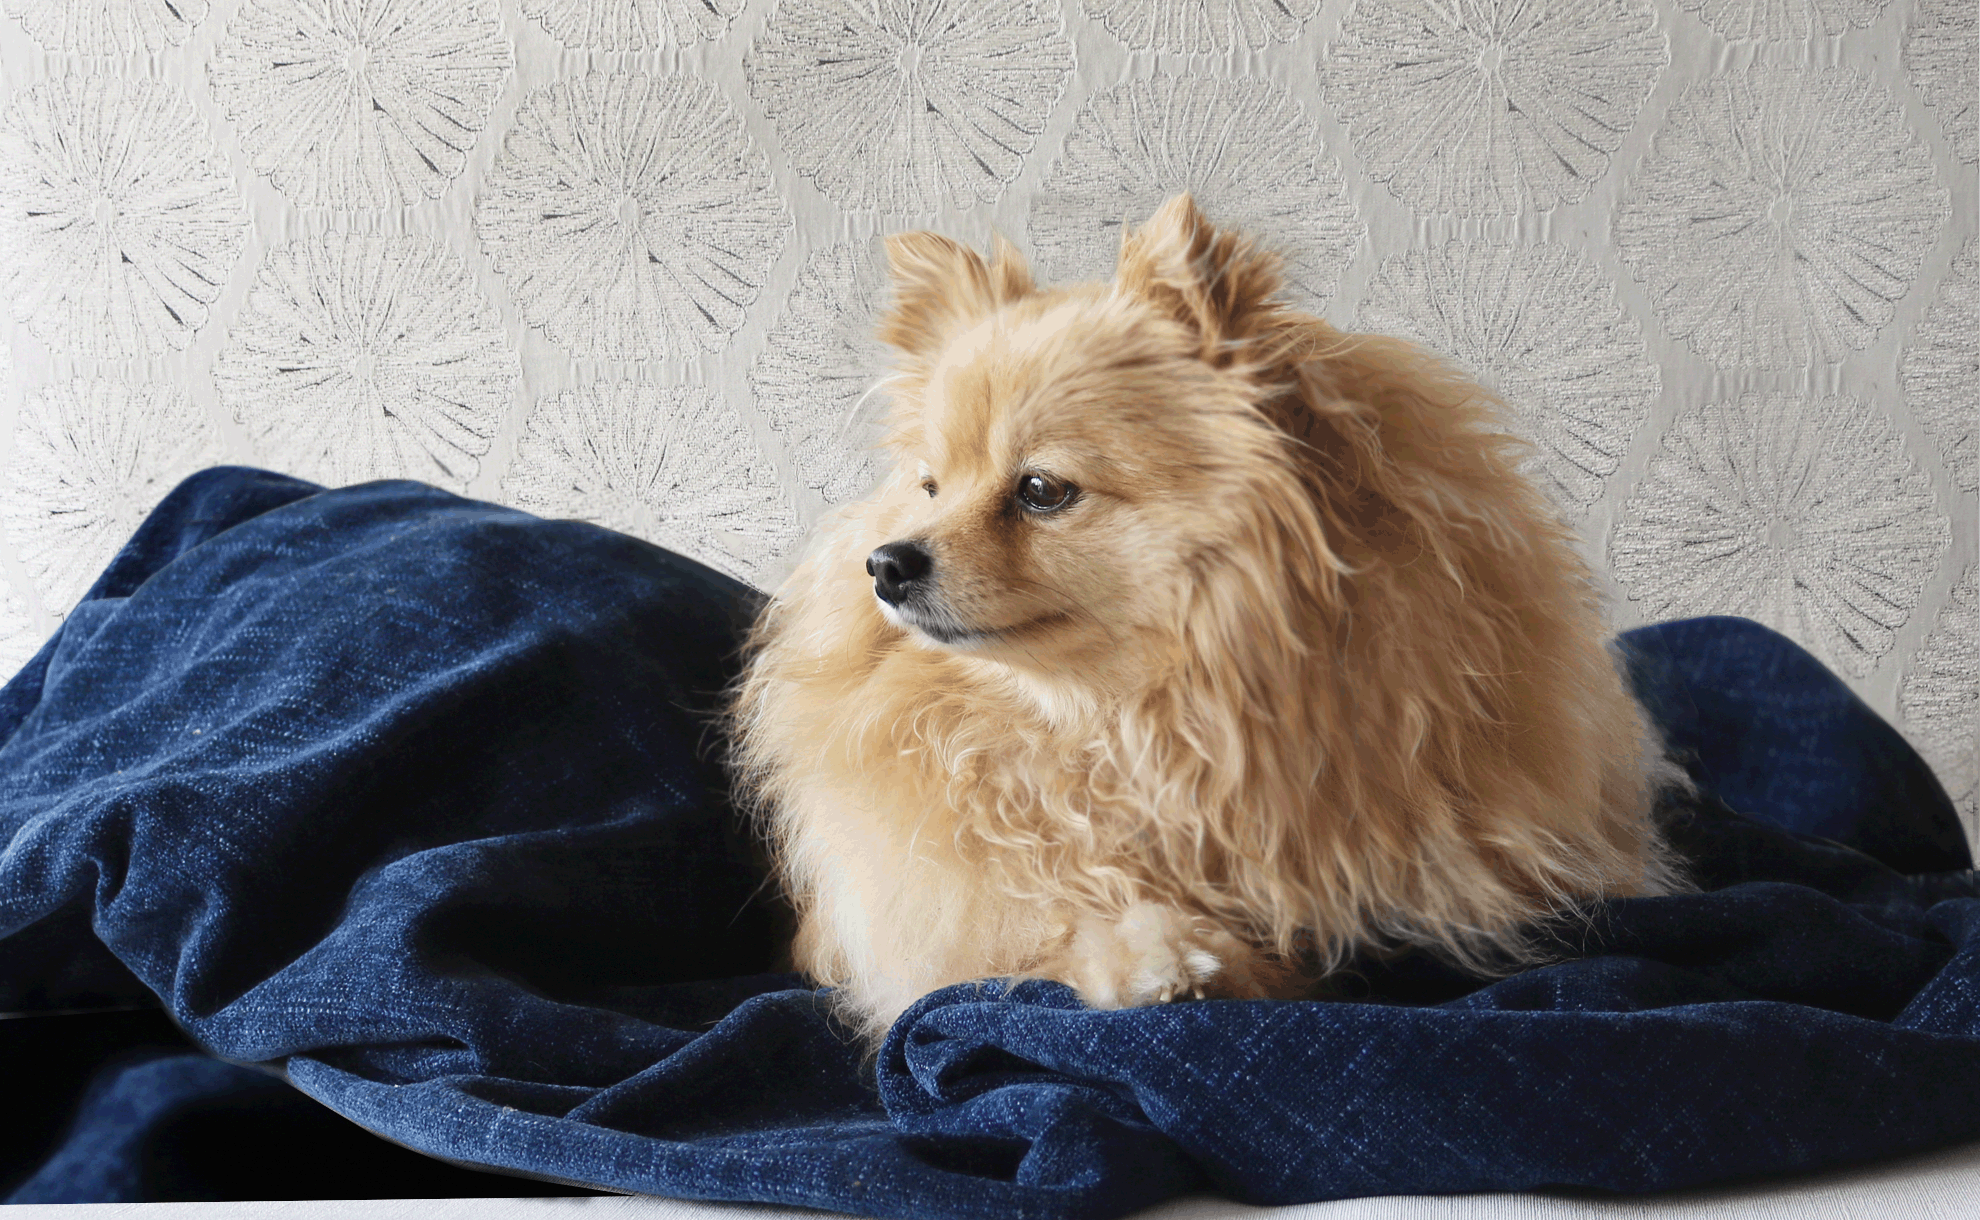 Luxury dog blanket - Julie London Design